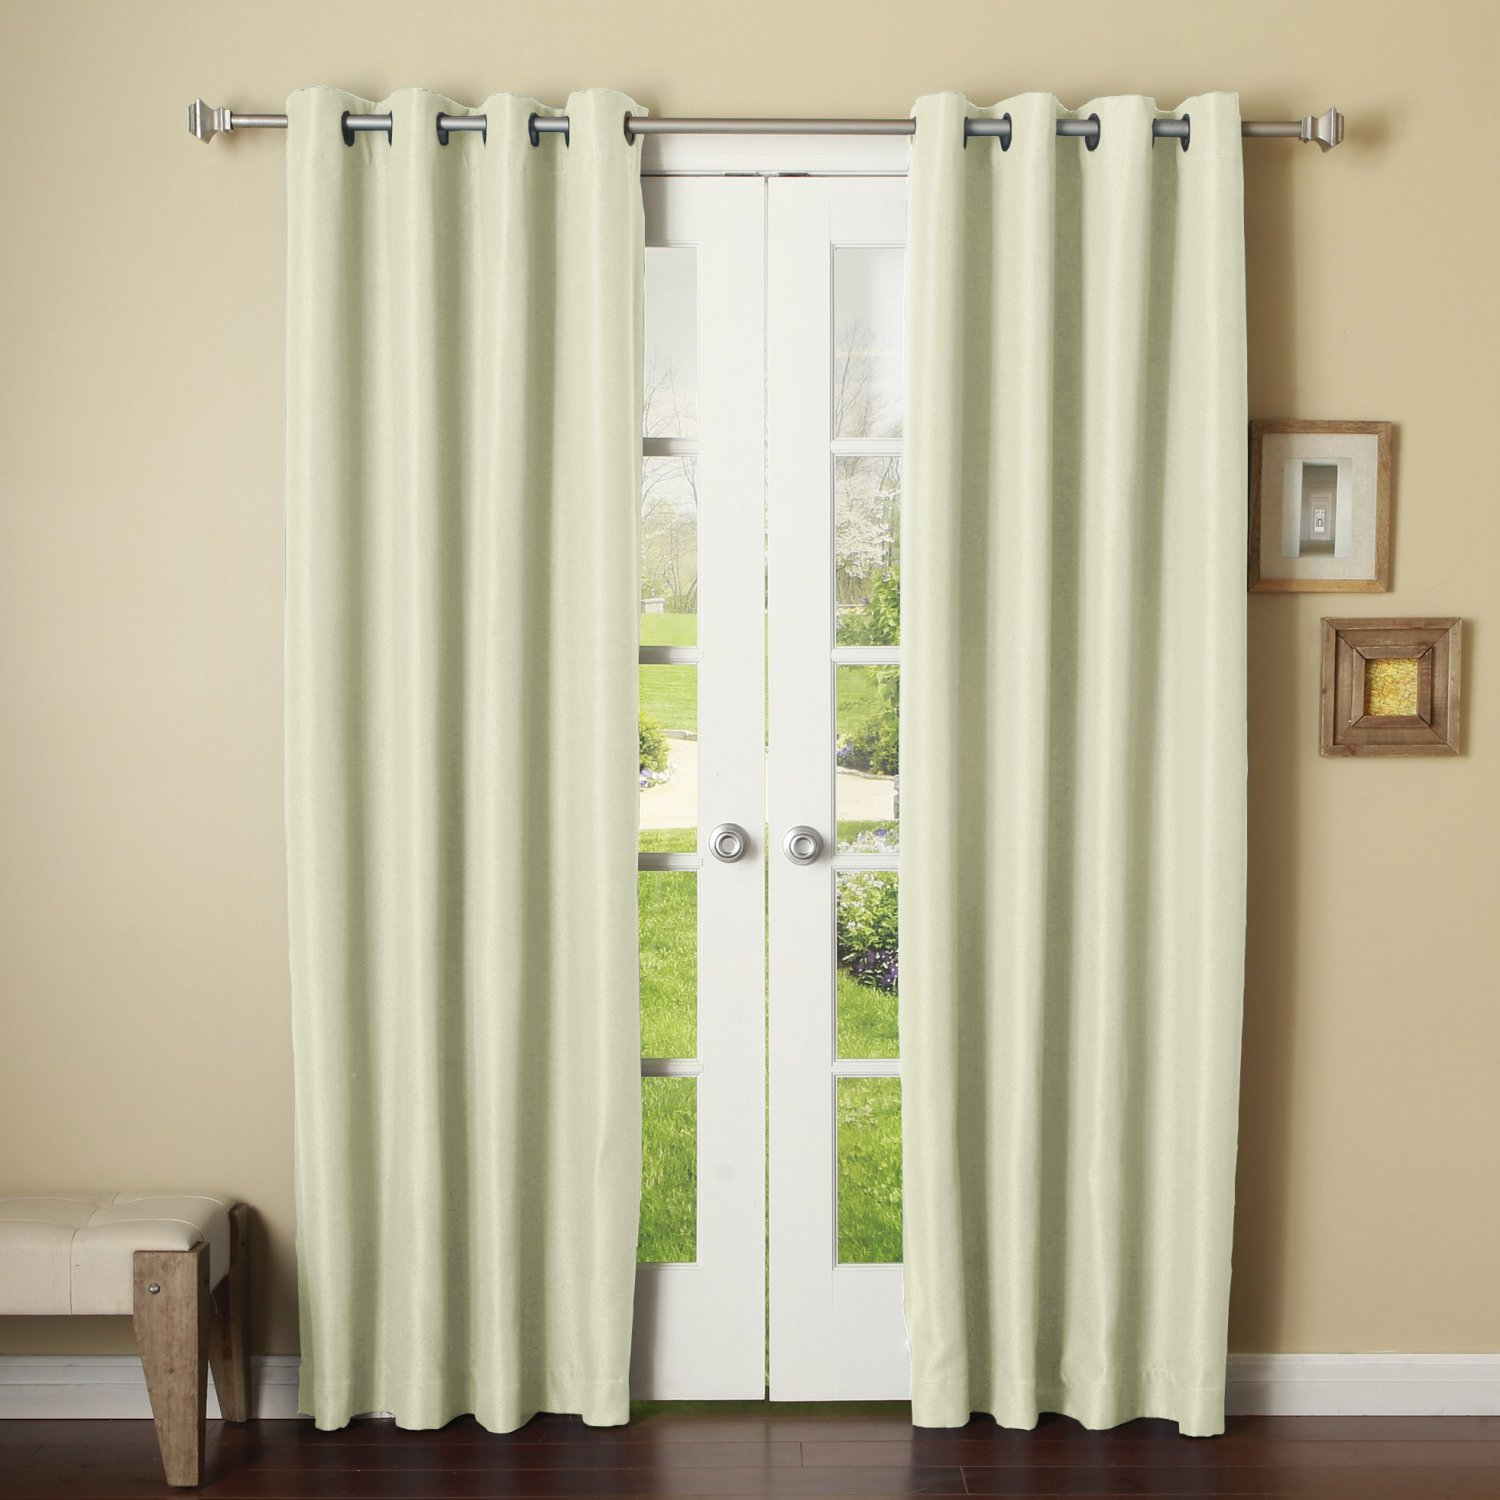 WHITE,2 PANELS GROMMET THERMAL INSULATED BLACKOUT WINDOW CURTAIN DRAPE 46X84